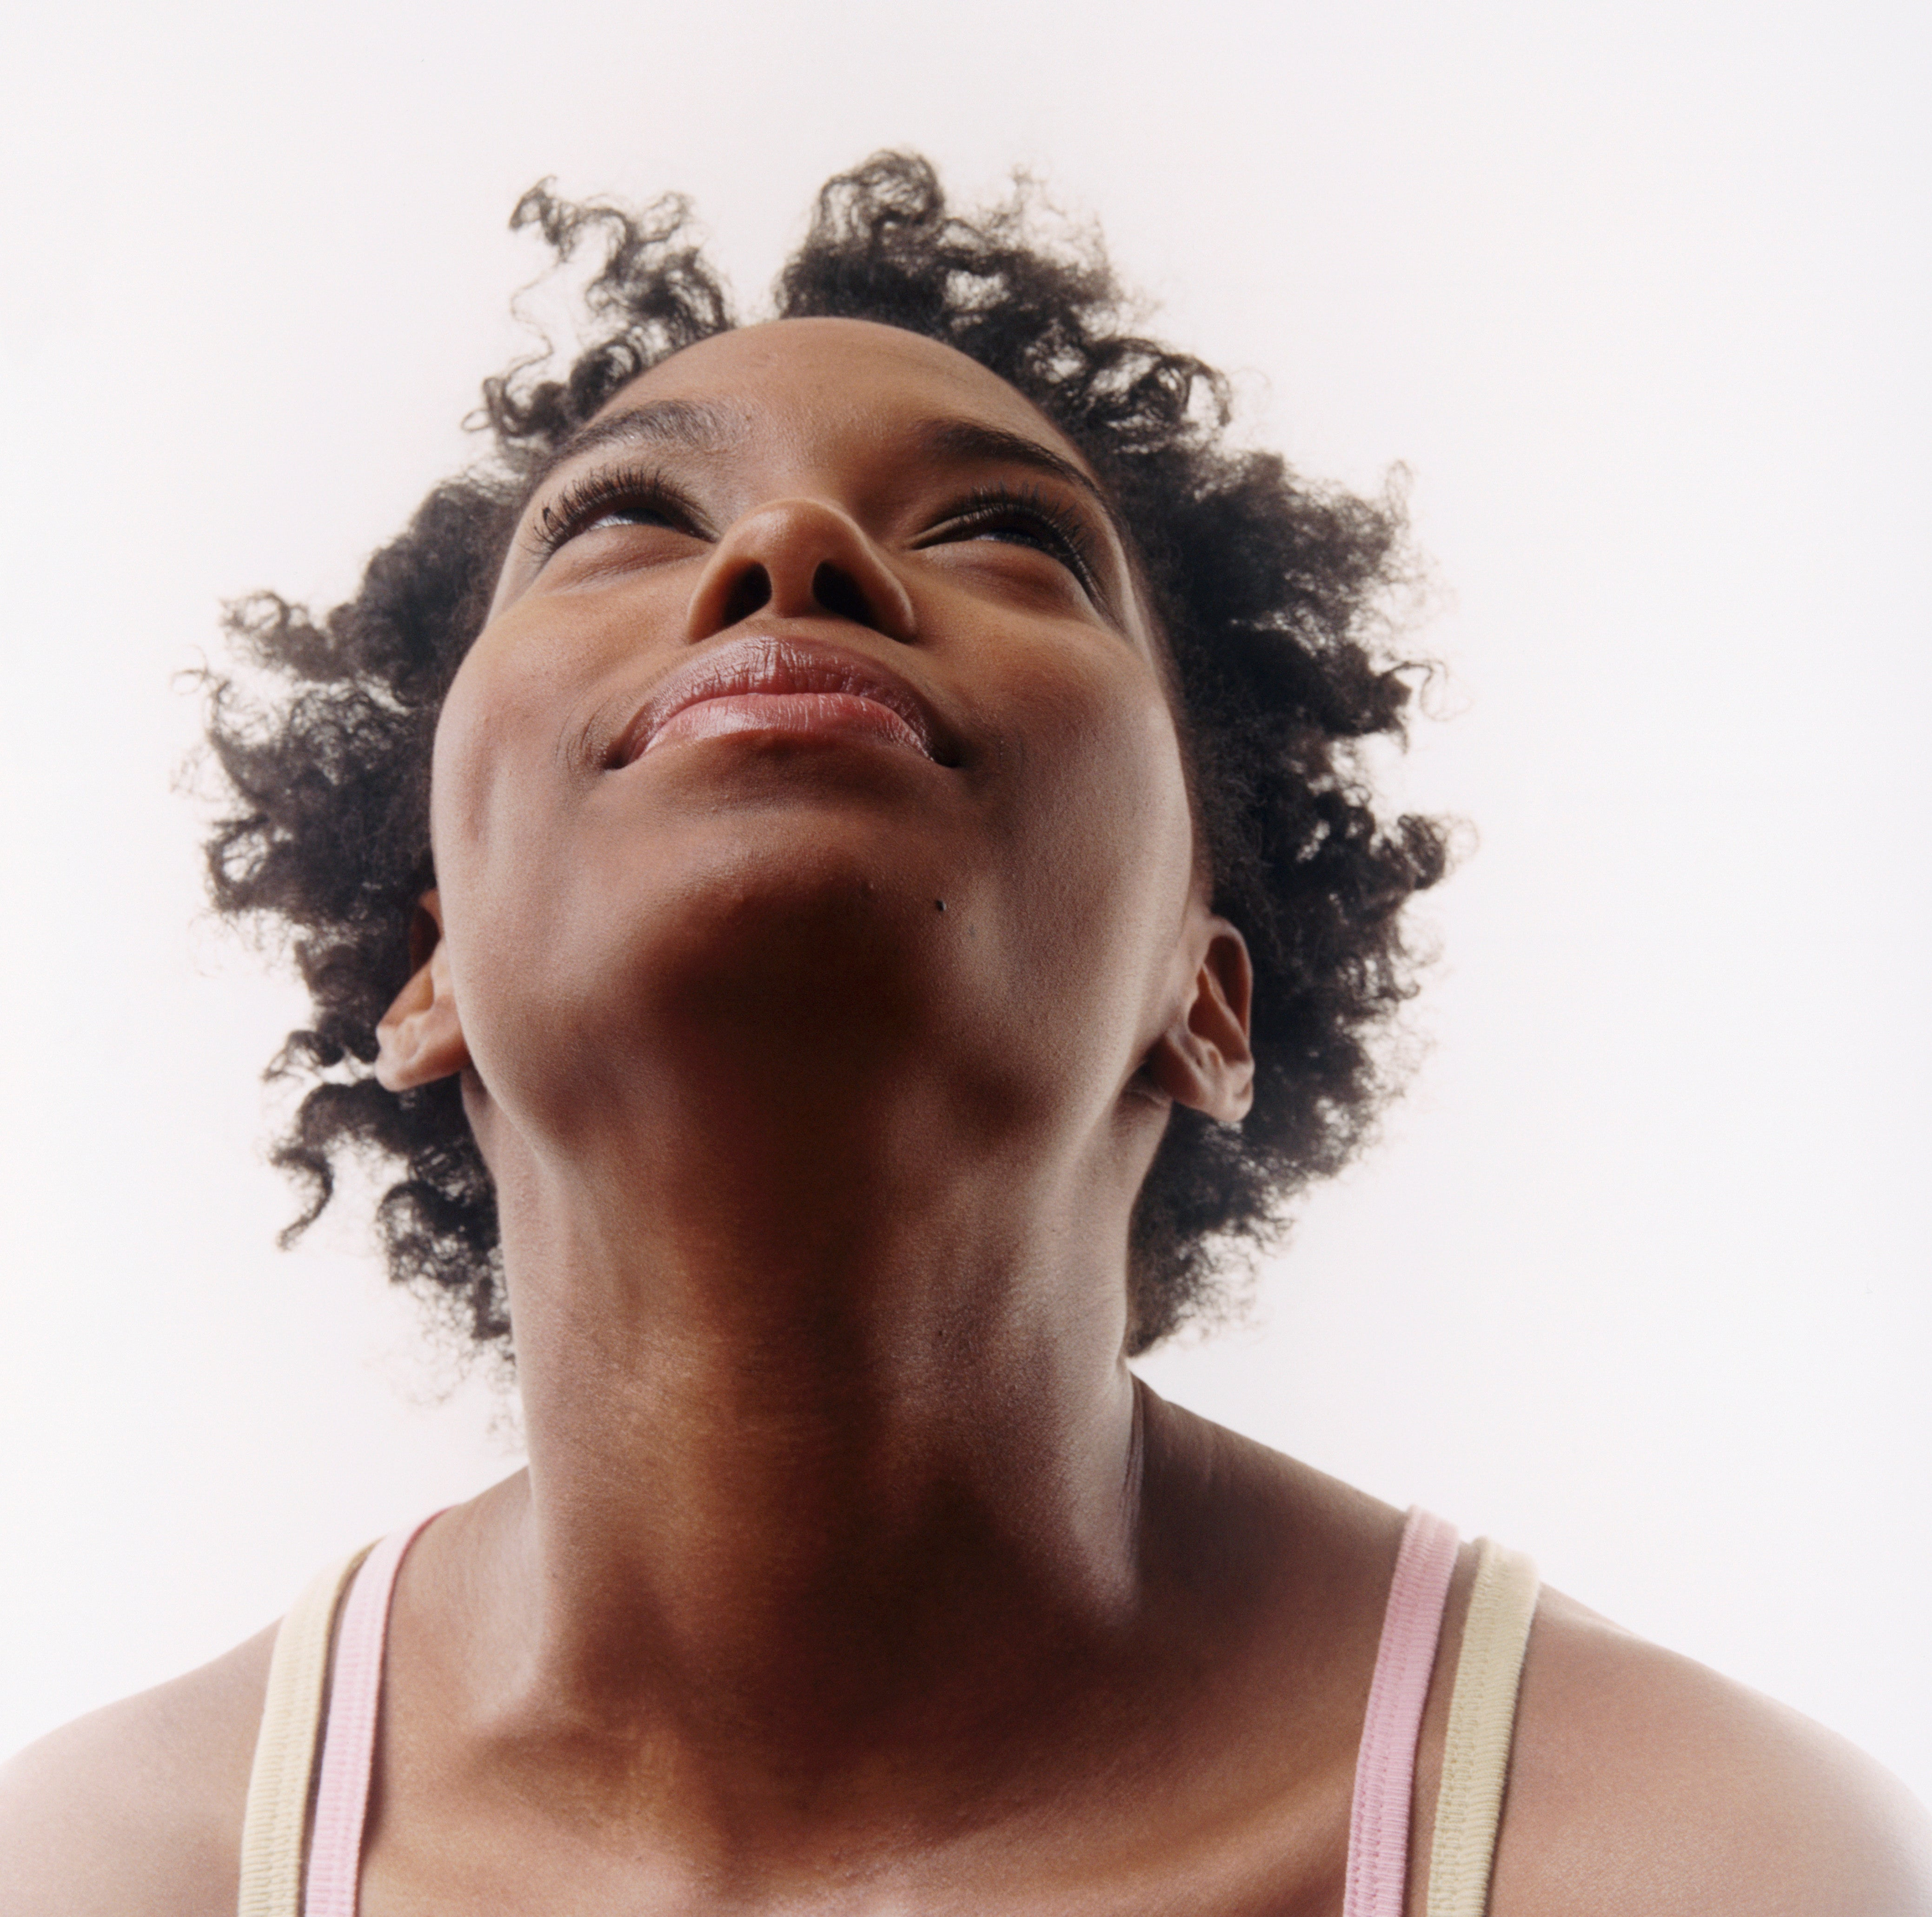 15 Quotes About Hope And Strength From Famous Black Women To Help